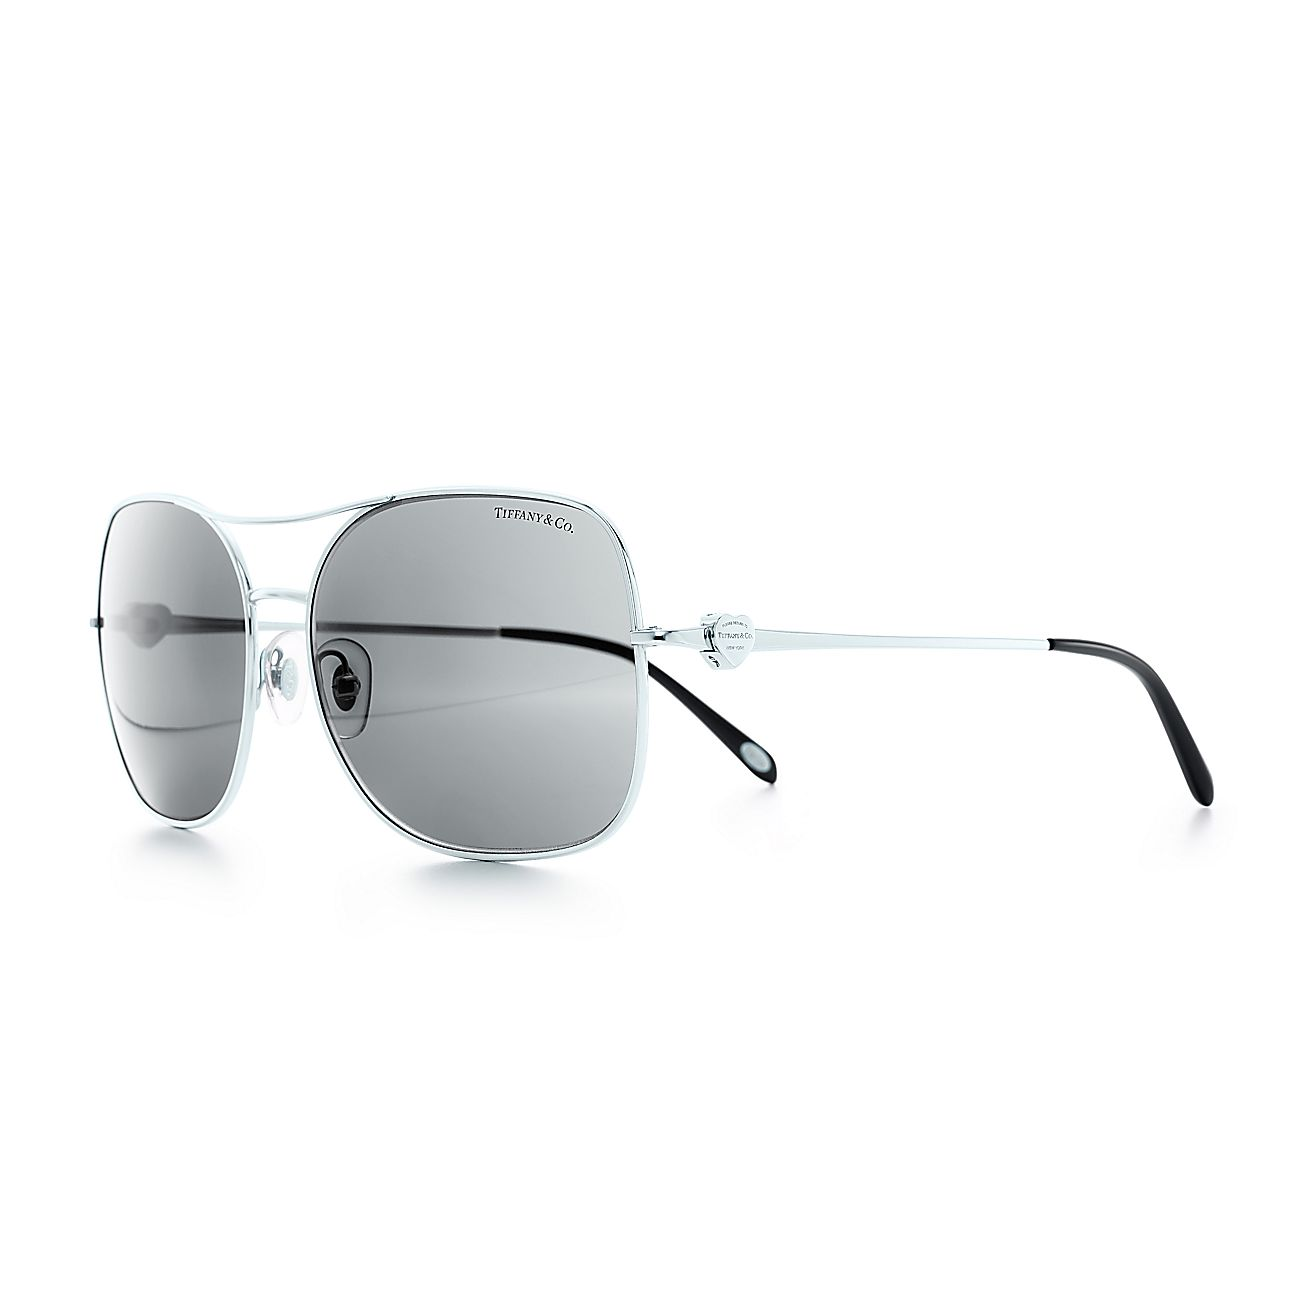 Return to Tiffany®:Aviator Sunglasses